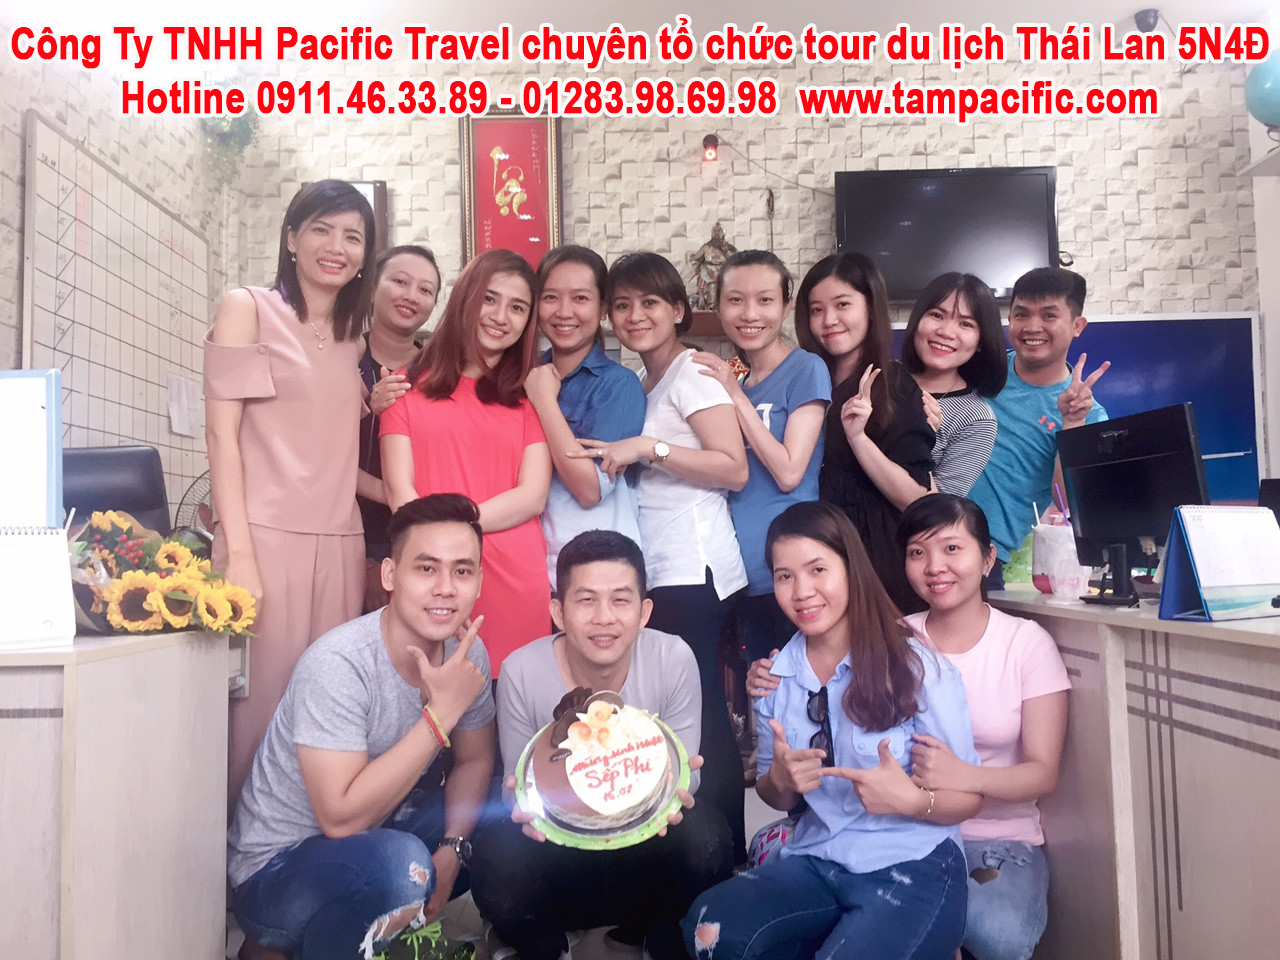 cong ty tnhh pacific travel